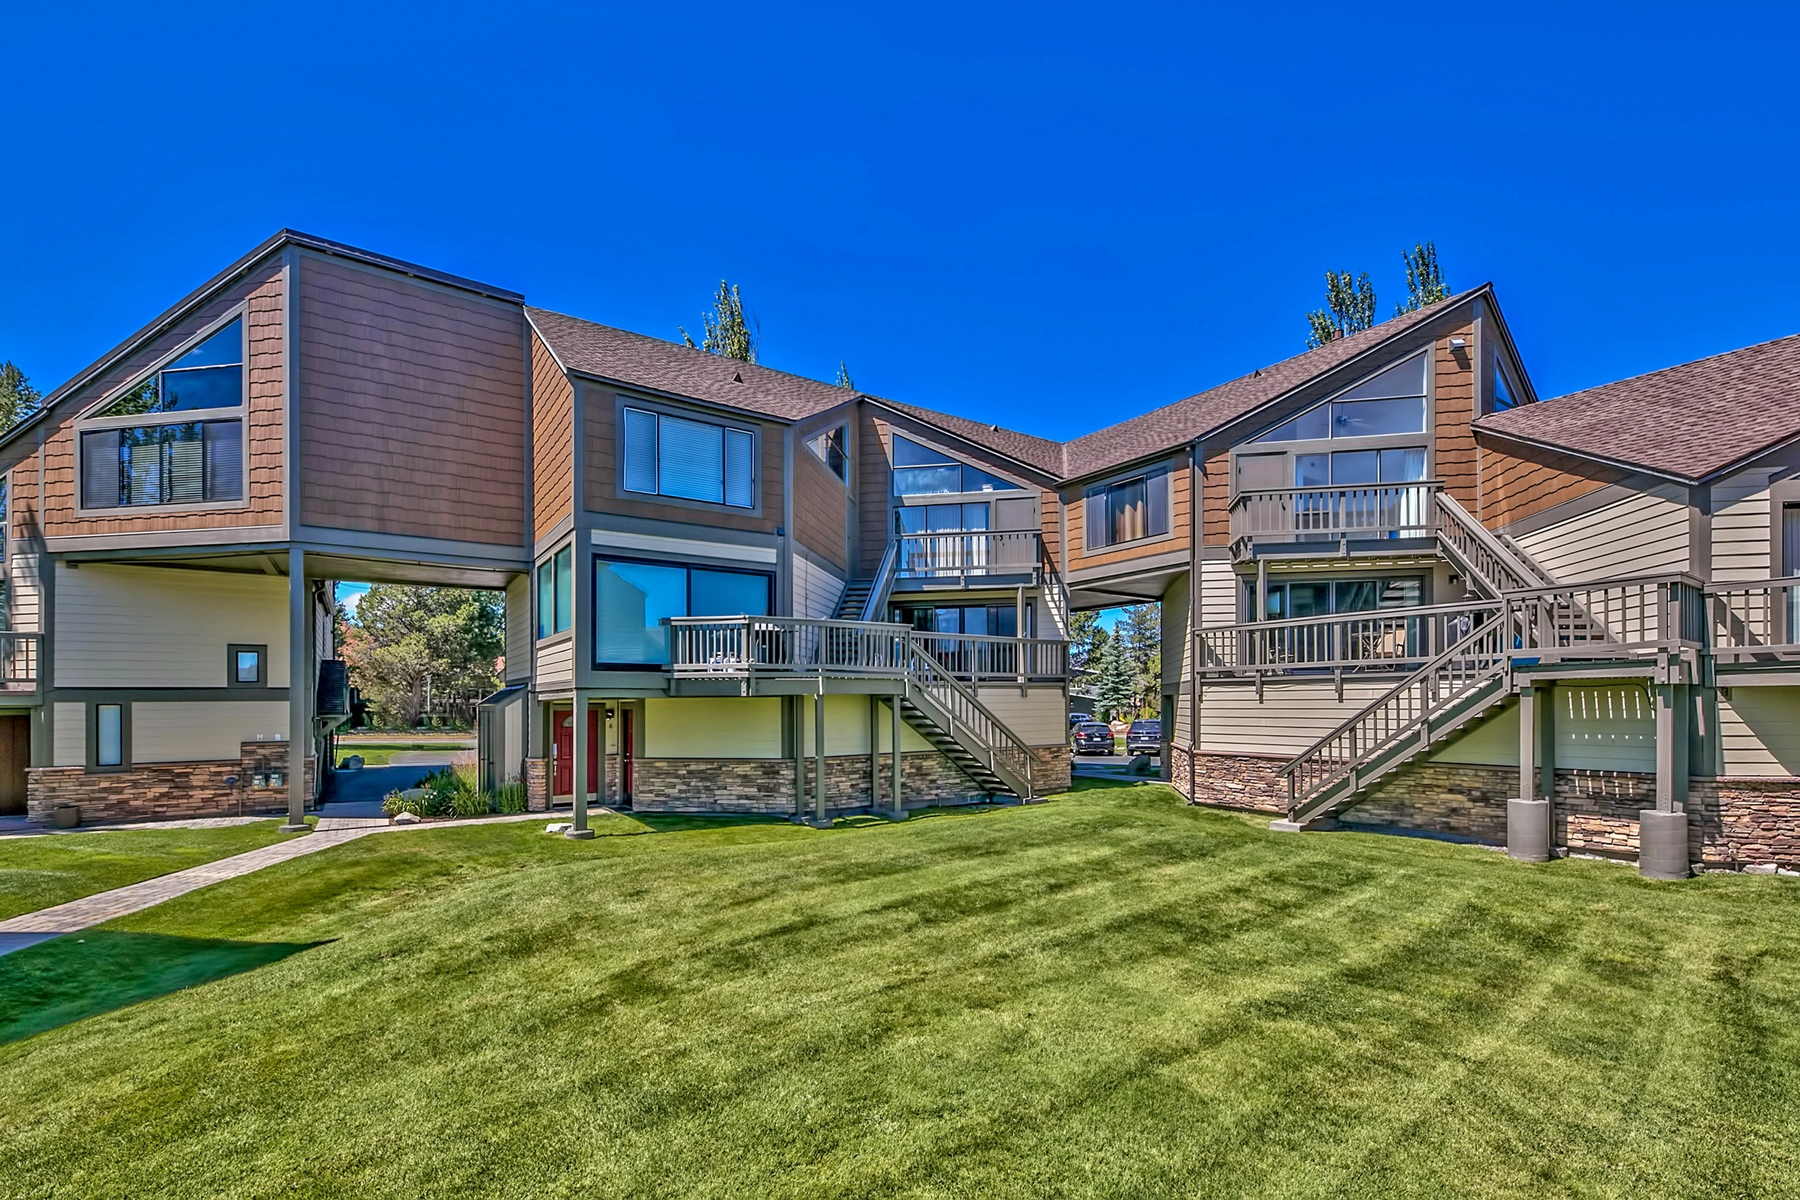 townhouses for Active at 555 Tahoe Keys Blvd, #7, South Lake Tahoe, CA, 96150 555 Tahoe Keys Boulevard #7 South Lake Tahoe, California 96150 United States